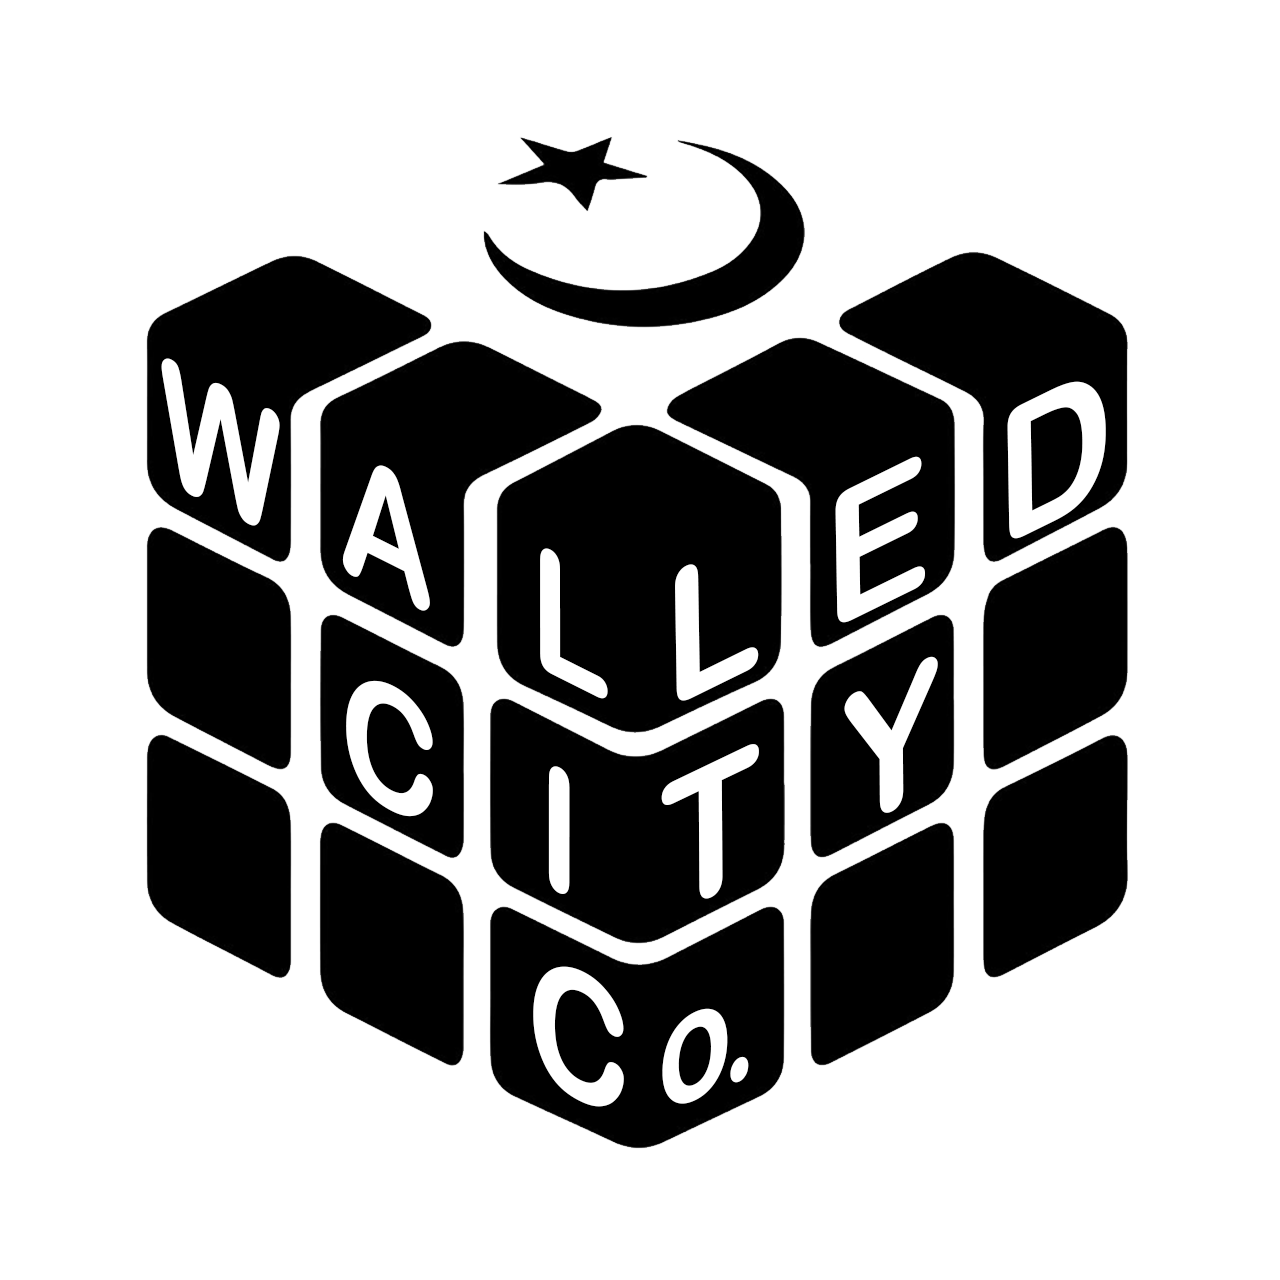 Walled City Co.